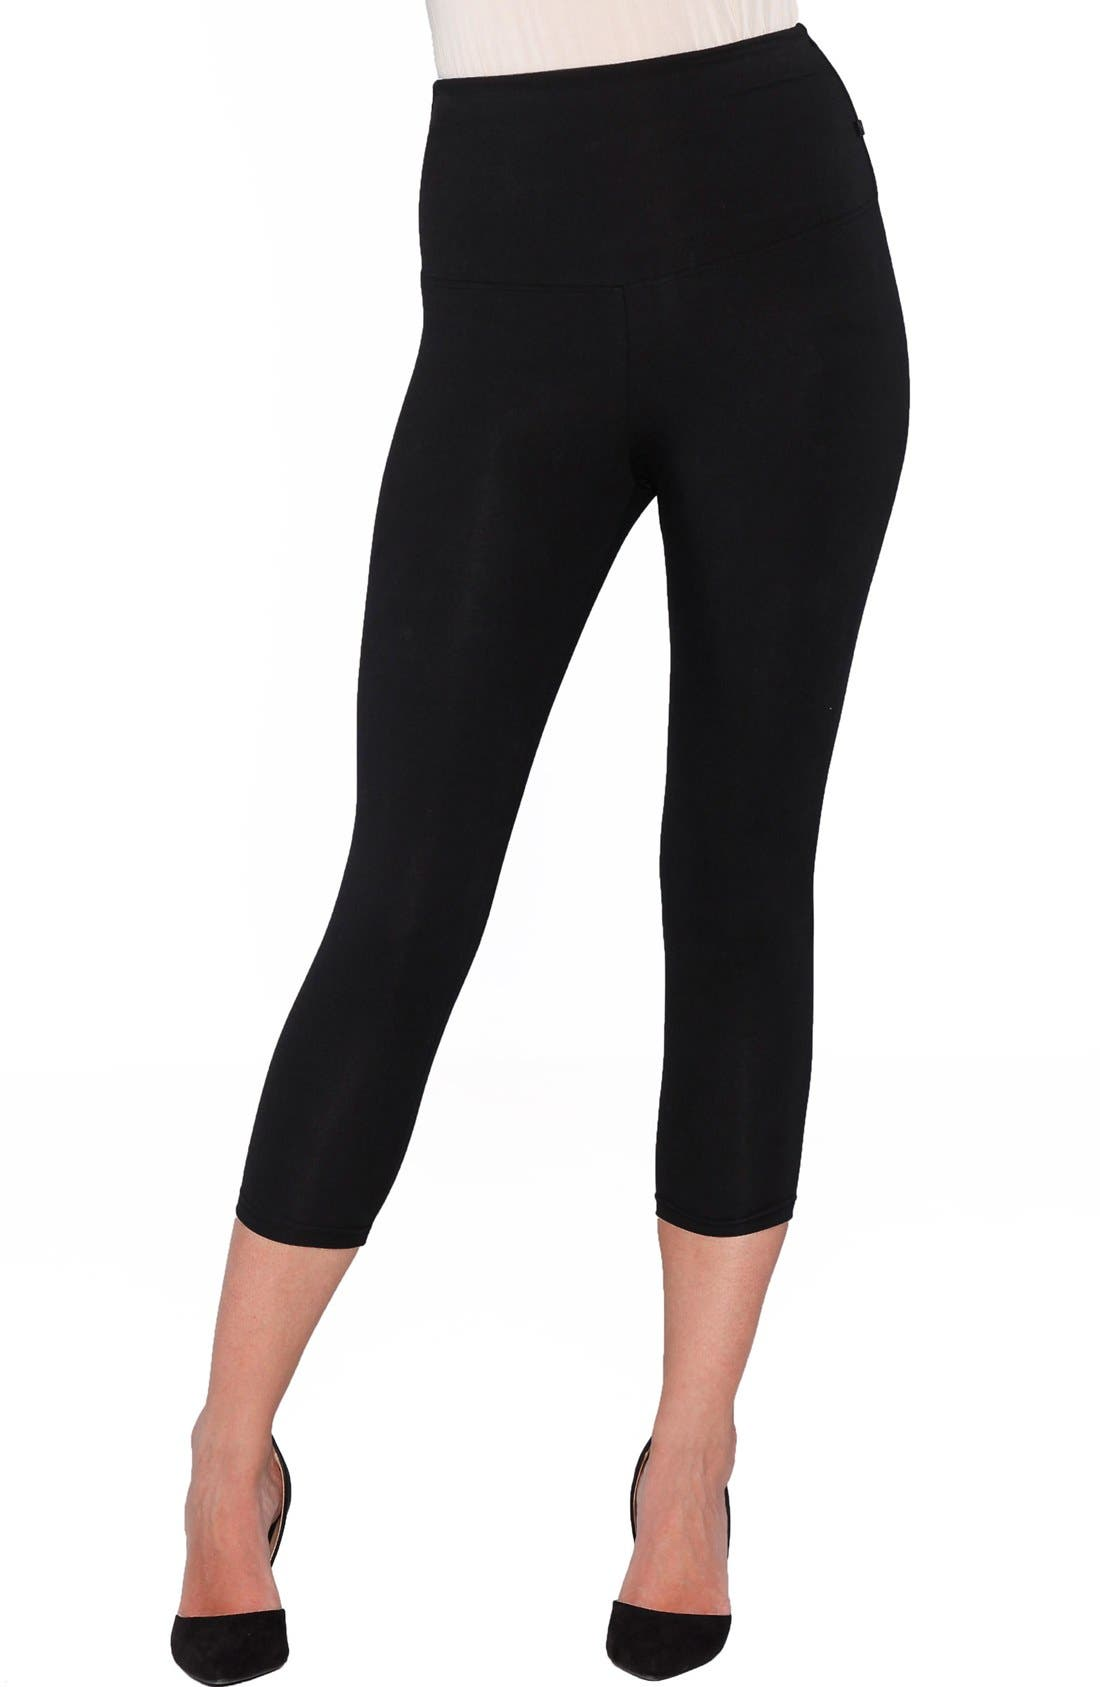 Main Image - Angel Maternity 'The Tummy Tight' Capri Postpartum Leggings